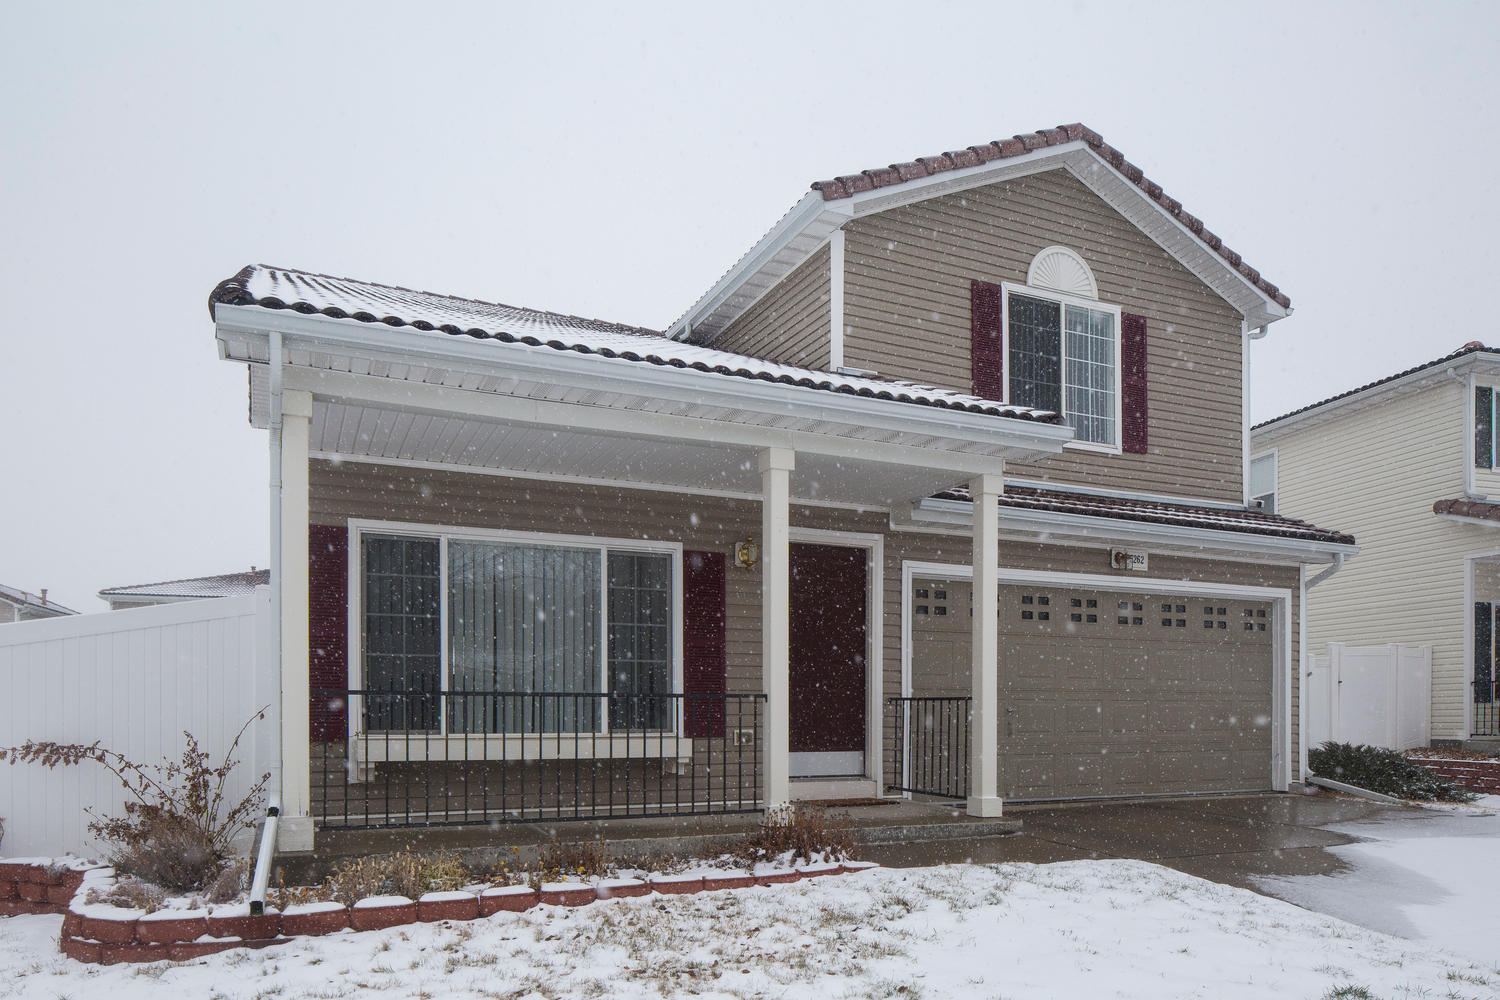 Single Family Home for Sale at Charming two story home with HUGE back/side yard! 5262 Argonne Court Green Valley Ranch, Denver, Colorado 80249 United States